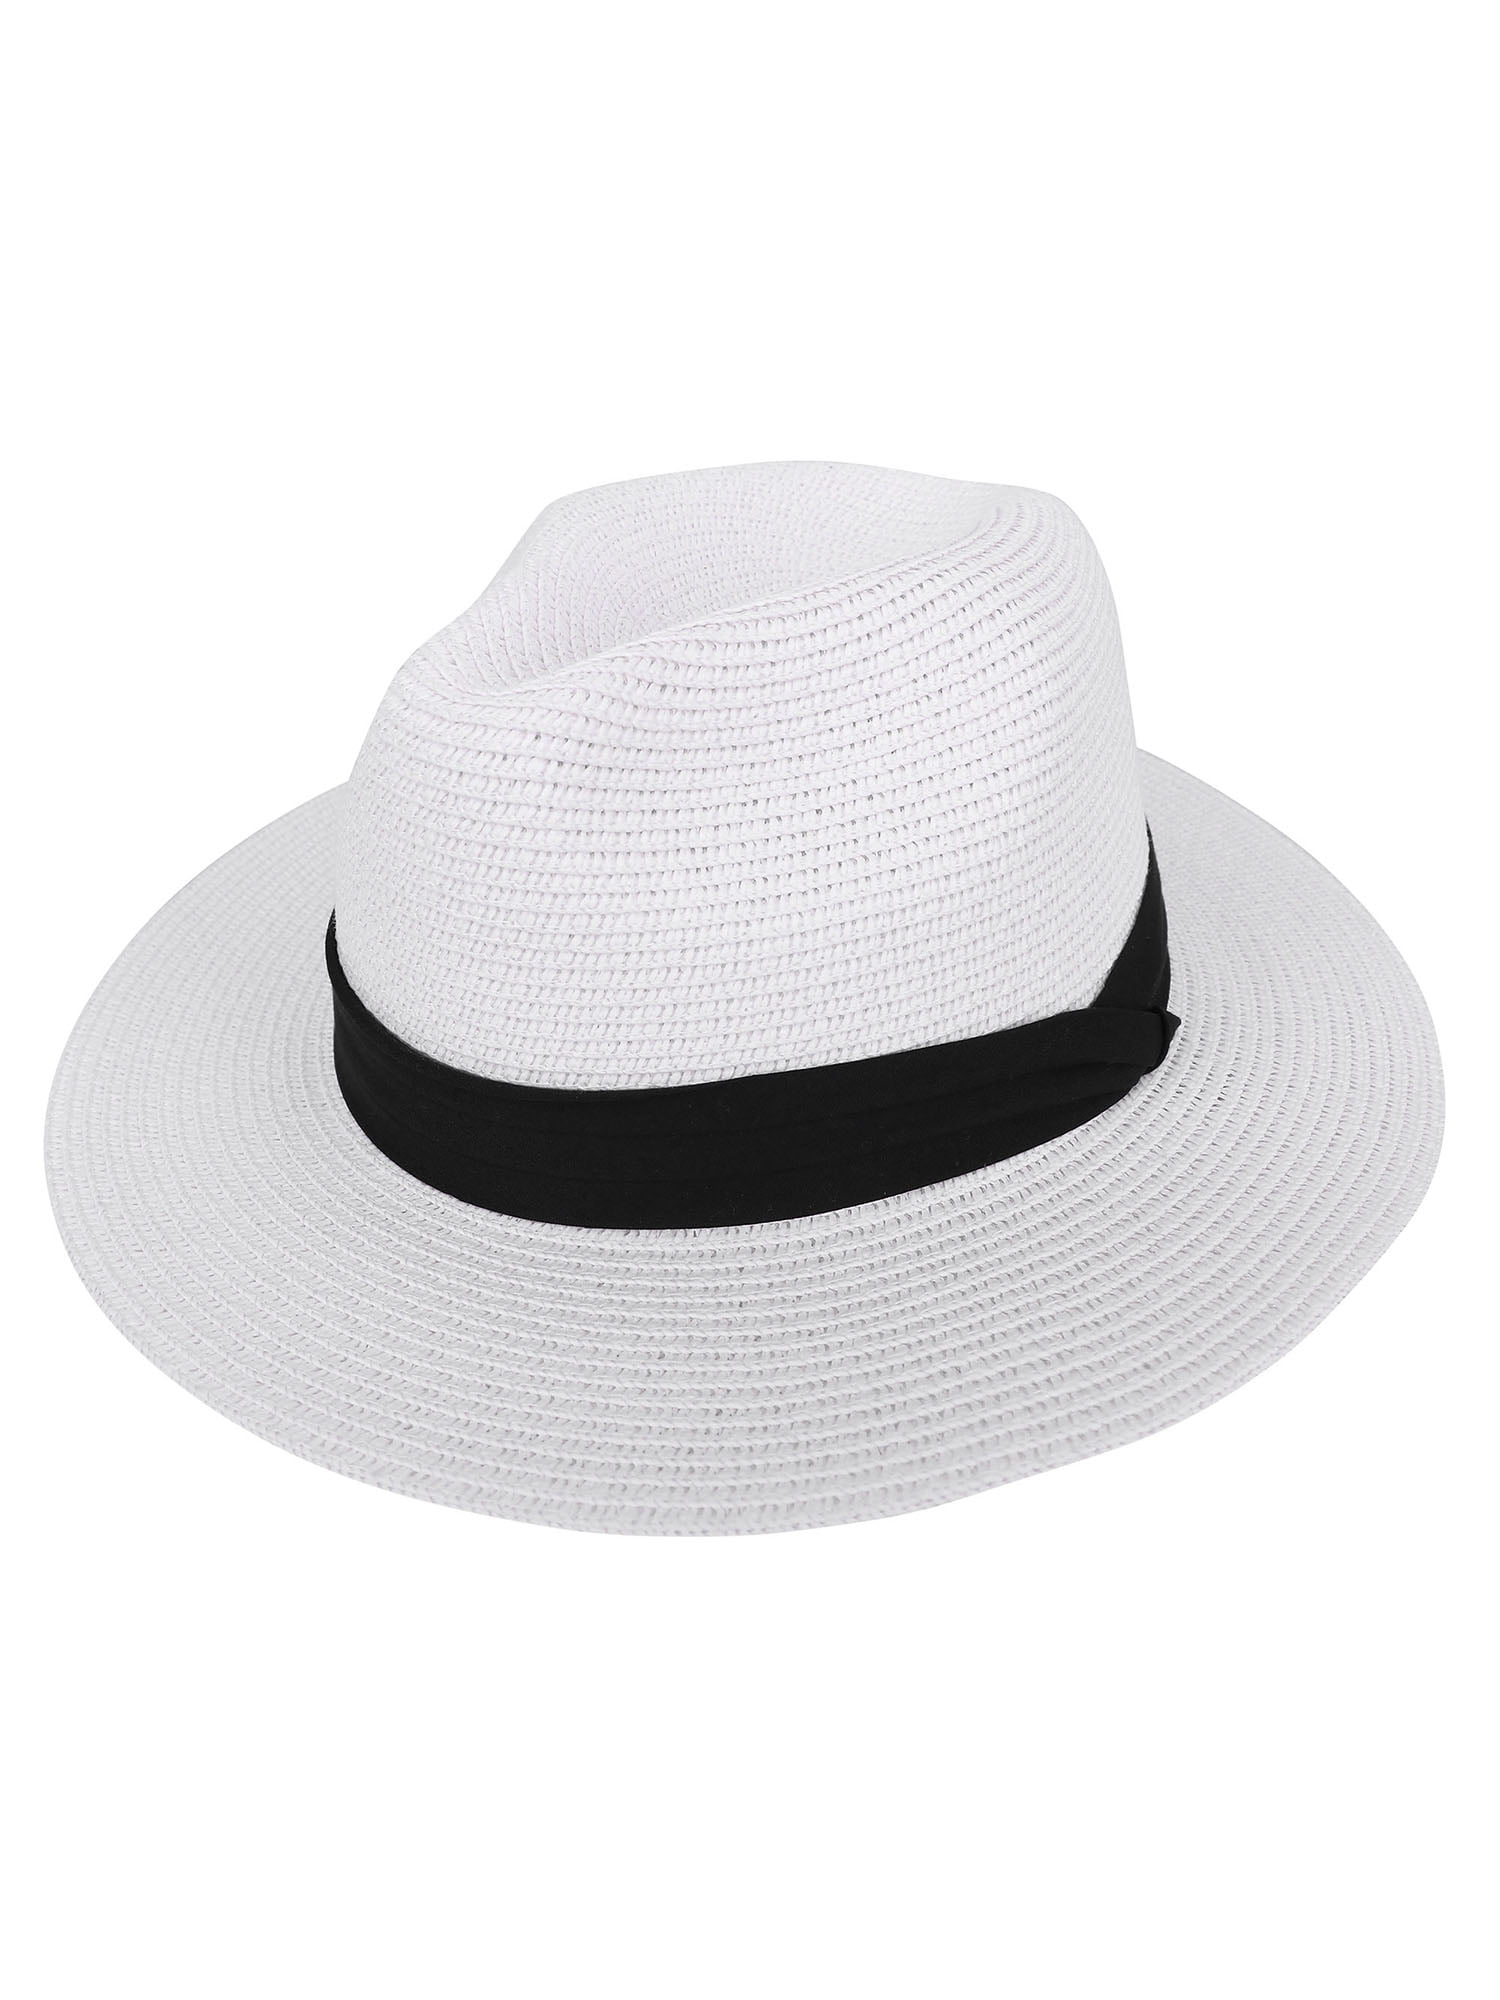 Unisex Straw Packable Travel Panama Hat Trilby Wide Brim Cap Gift Luxury